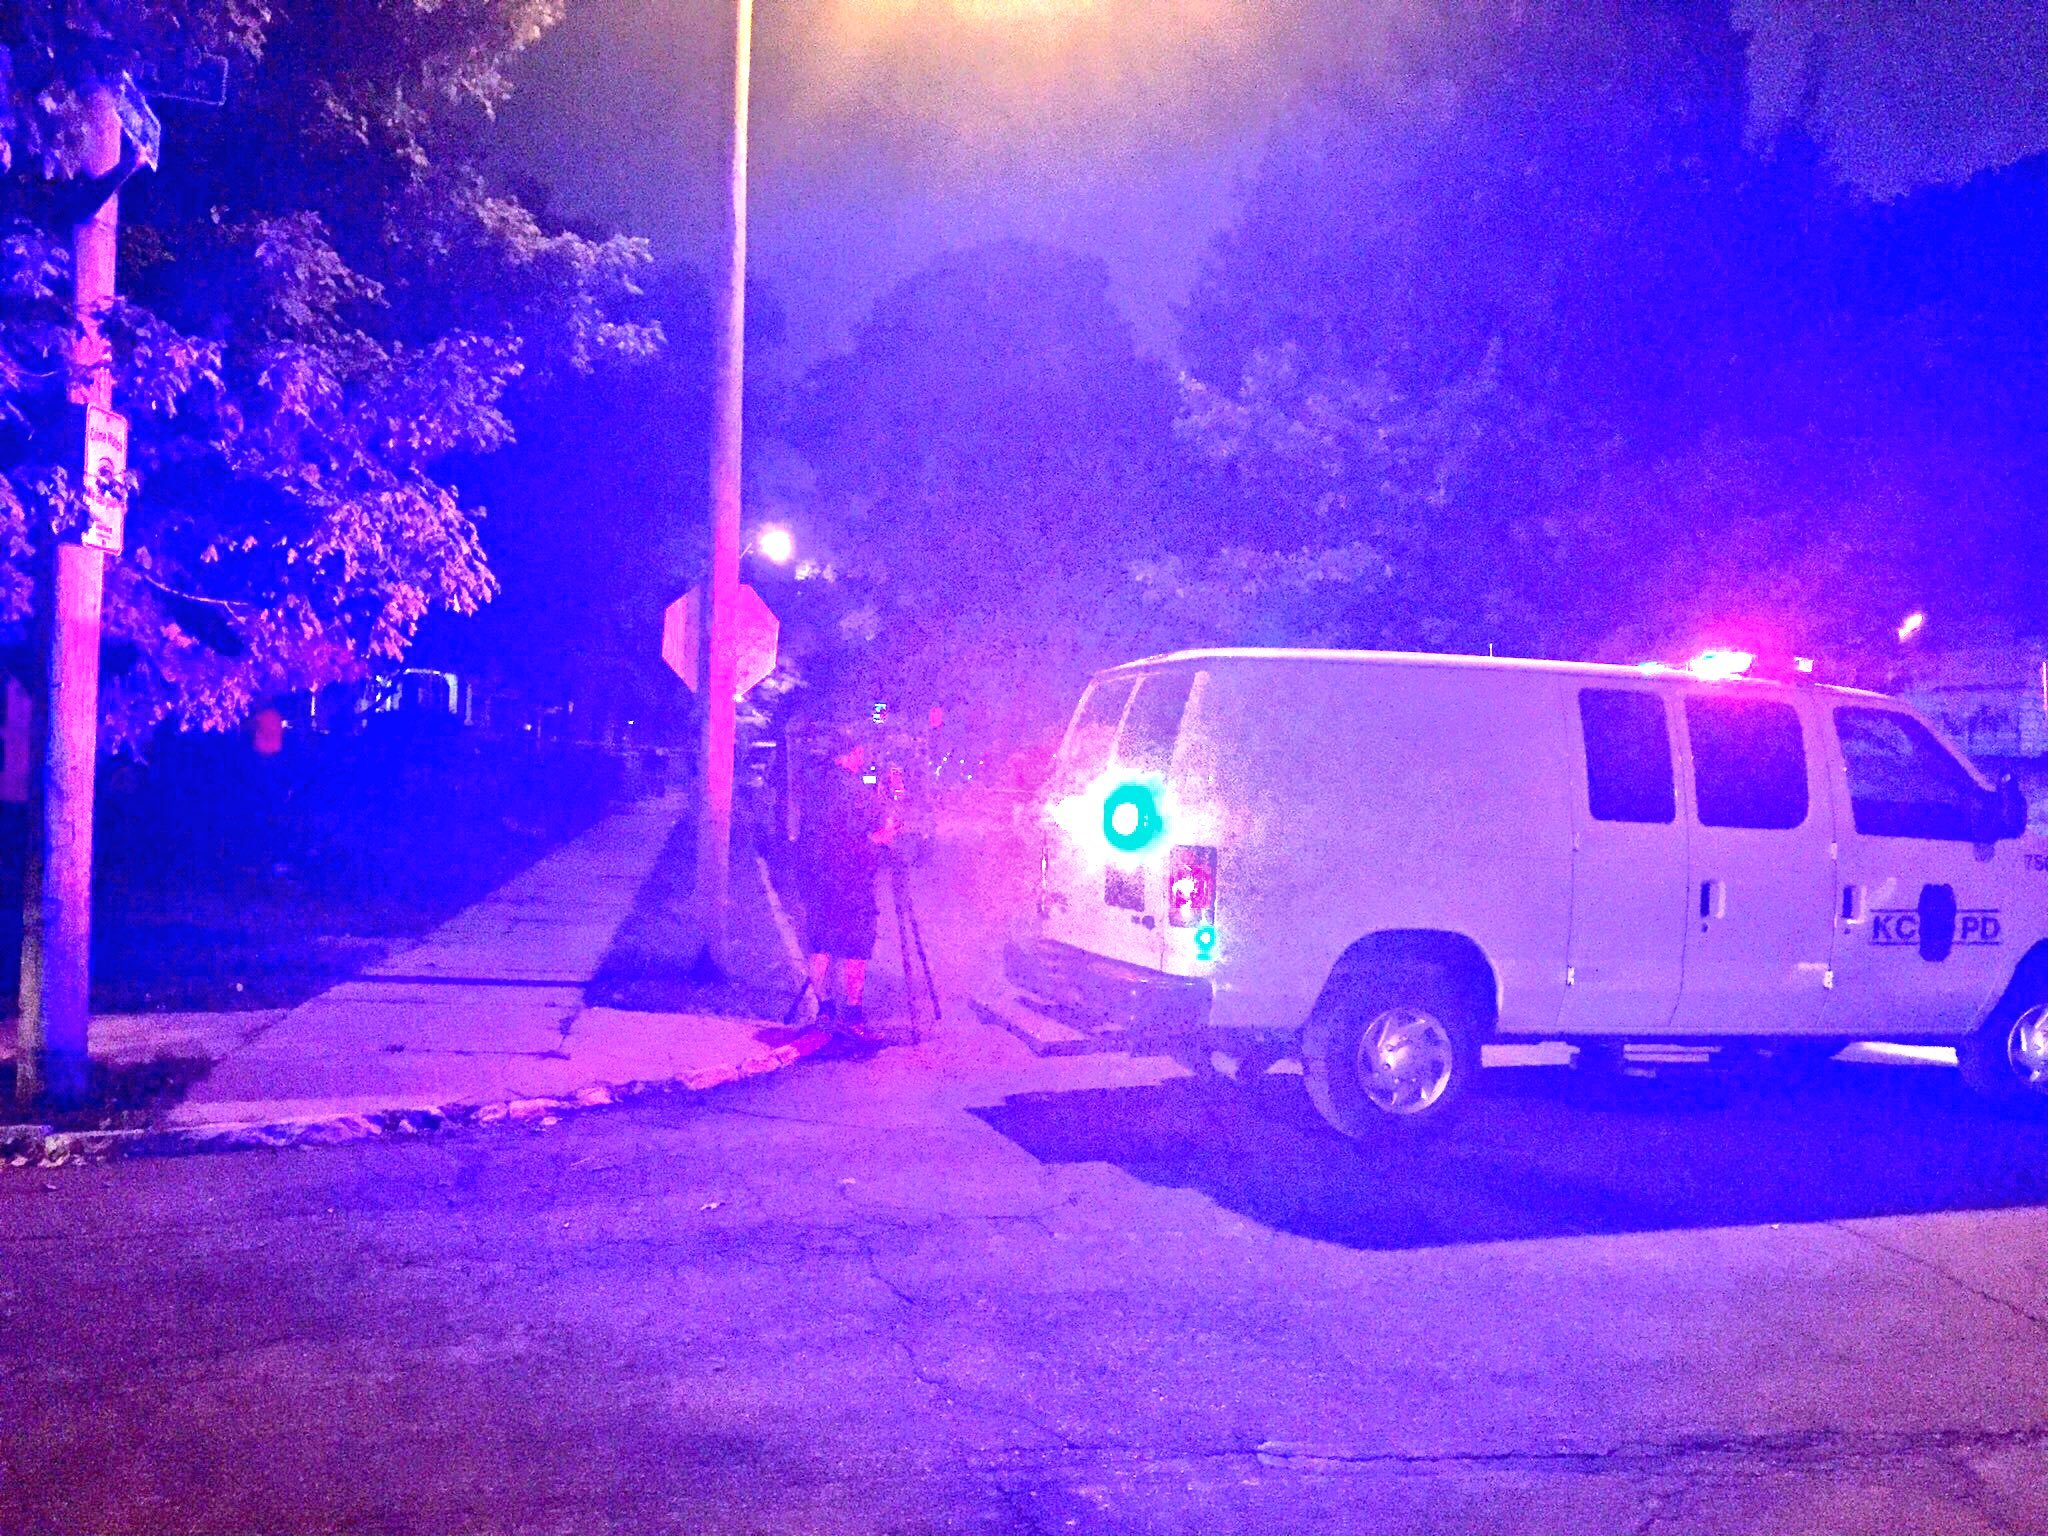 A 5-year-old was shot in the leg Tuesday night in Kansas City. (Joe Chiodo/KCTV5)